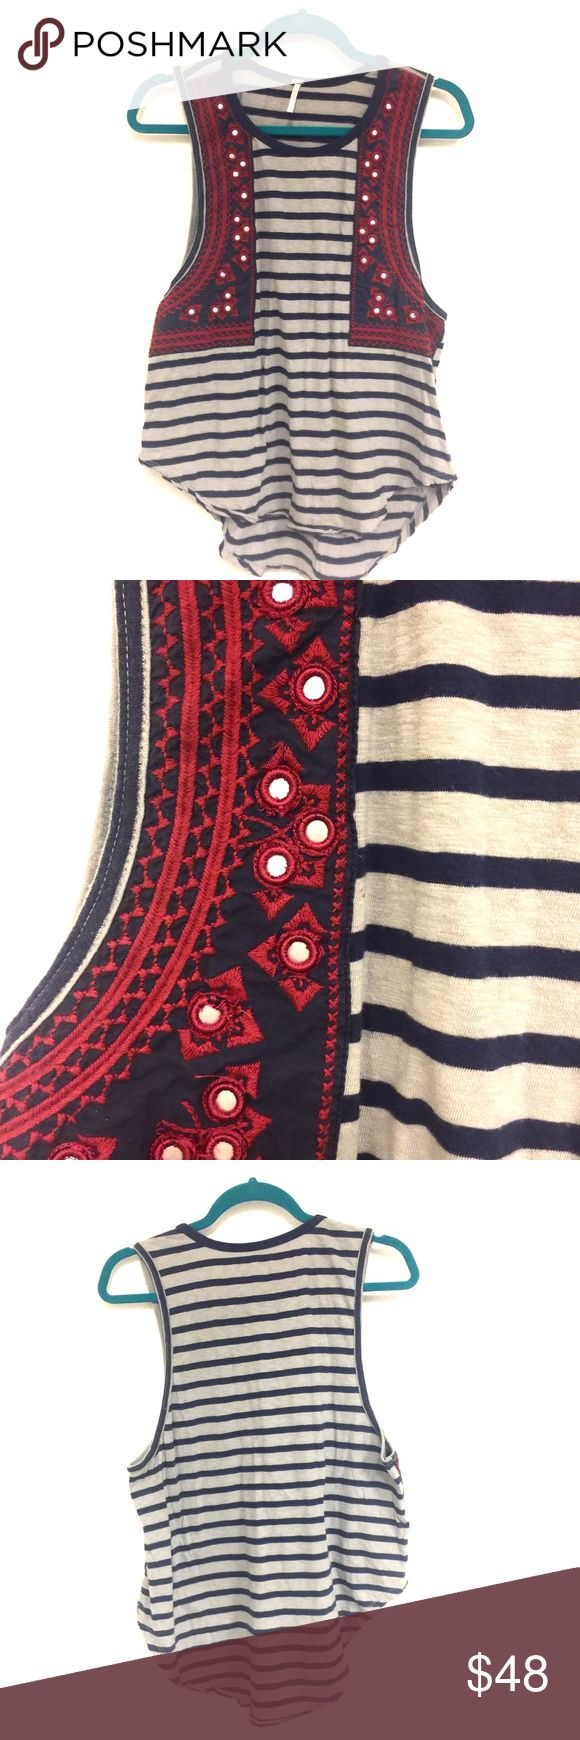 🍄 FREE PEOPLE 🍄 Mirrored Embroidered Stripe Tee • FREE PEOPLE • Navy and Gray Striped Tank • Navy and Red Embroidered & Mirrored Embellishments • EUC / Excellent Used Condition • Slouchy / Oversized Fit • US Women's S/P Small Petite • Perfect Item to add to a Summer Bohemian Outfit • Free People Tops Tank Tops